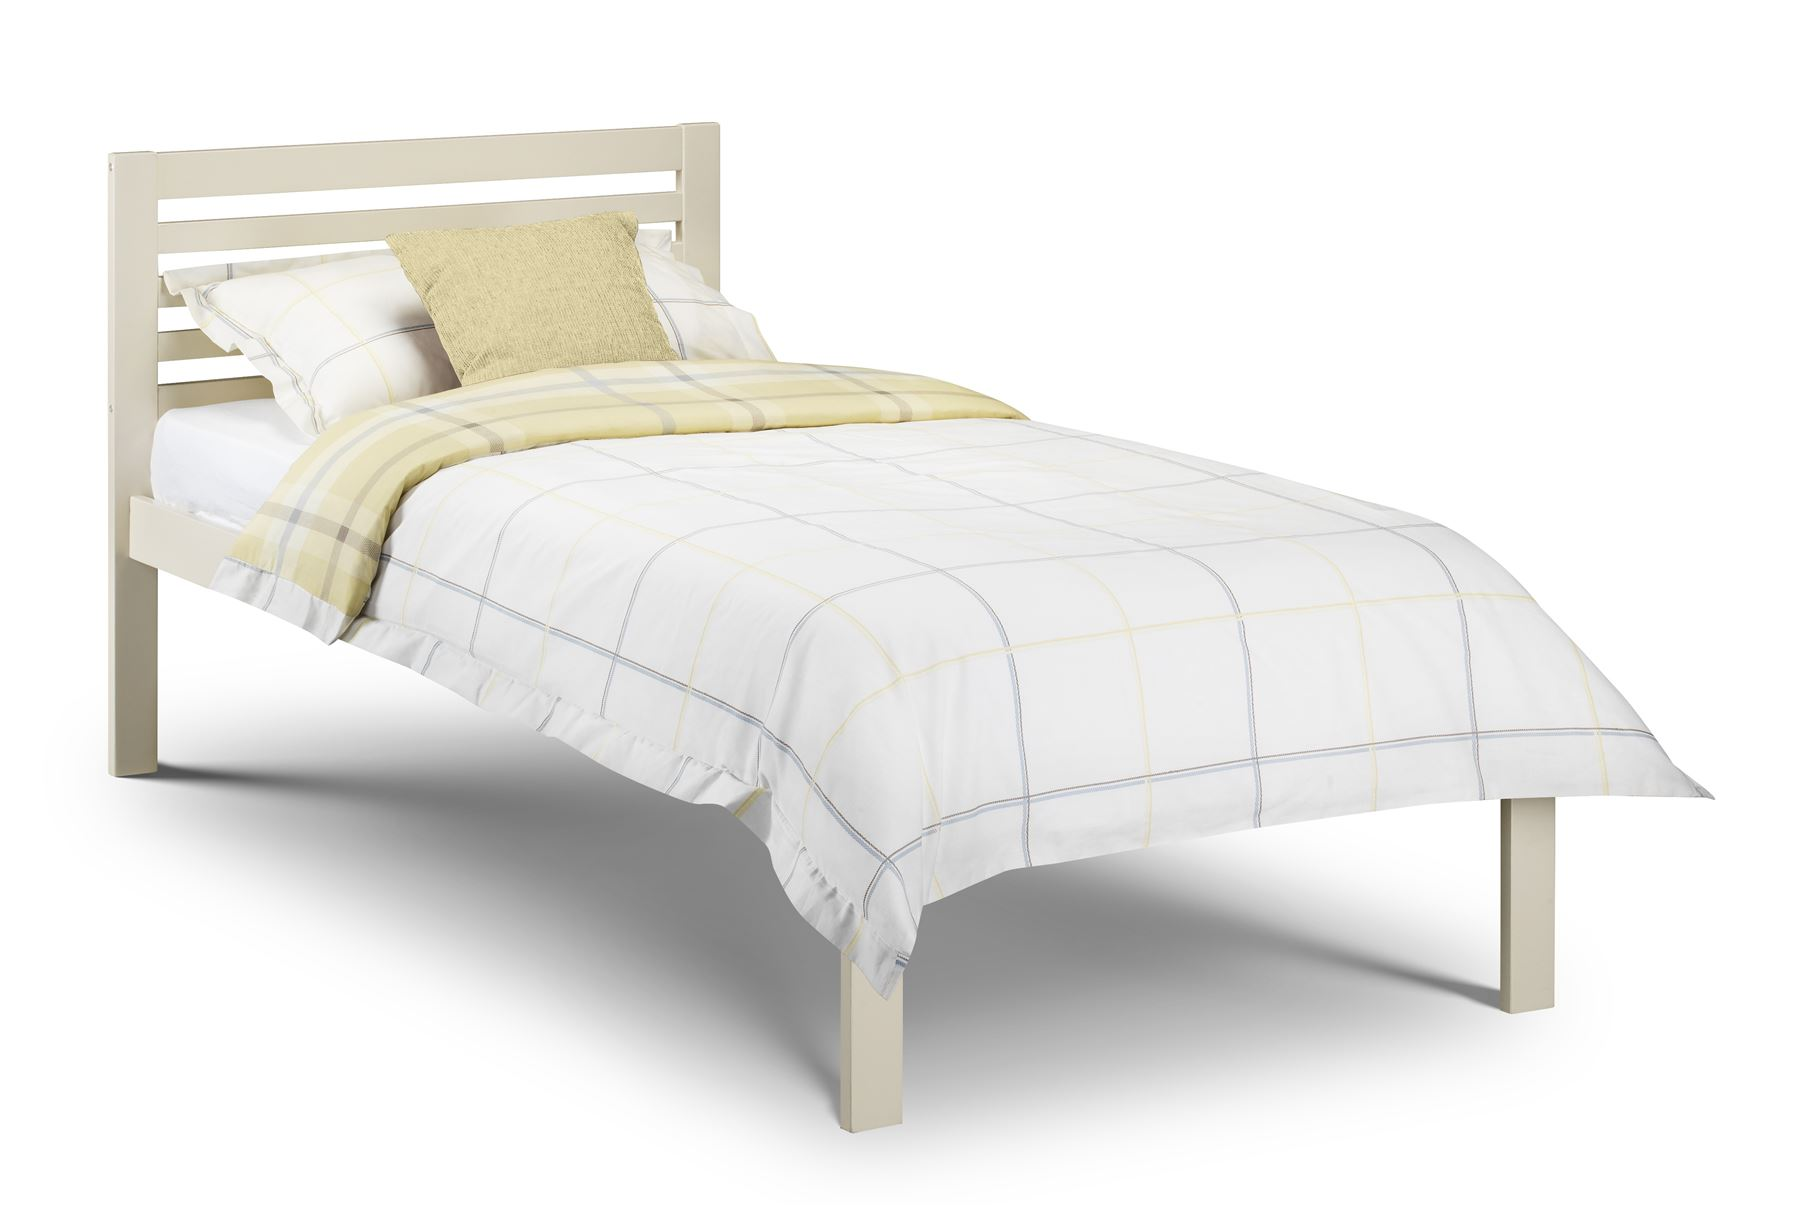 Julian Bowen Slocum Single 90cm 3FT Wood Bedstead Bed Frame in Stone White